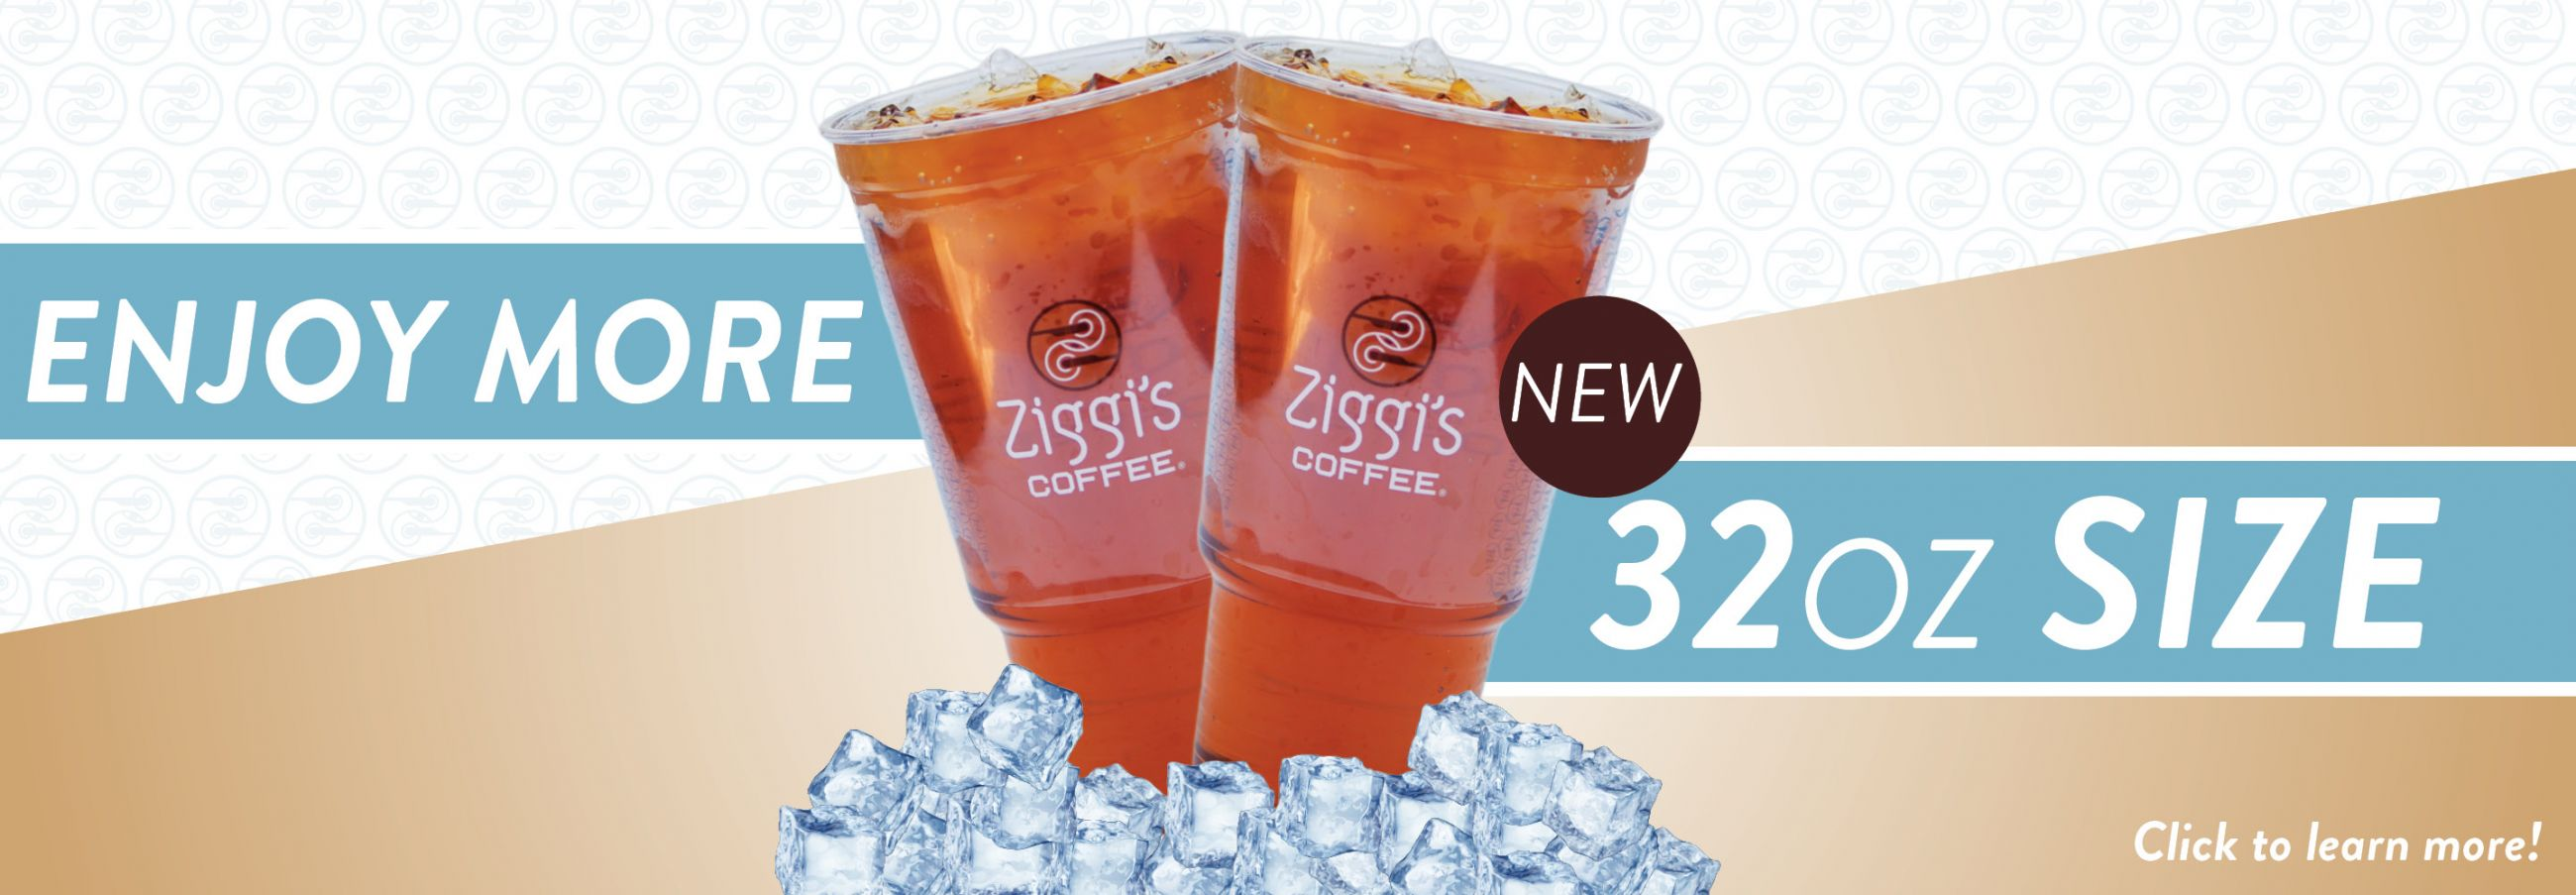 Photo of the new 32 oz. drink size now available at Ziggi's Coffee